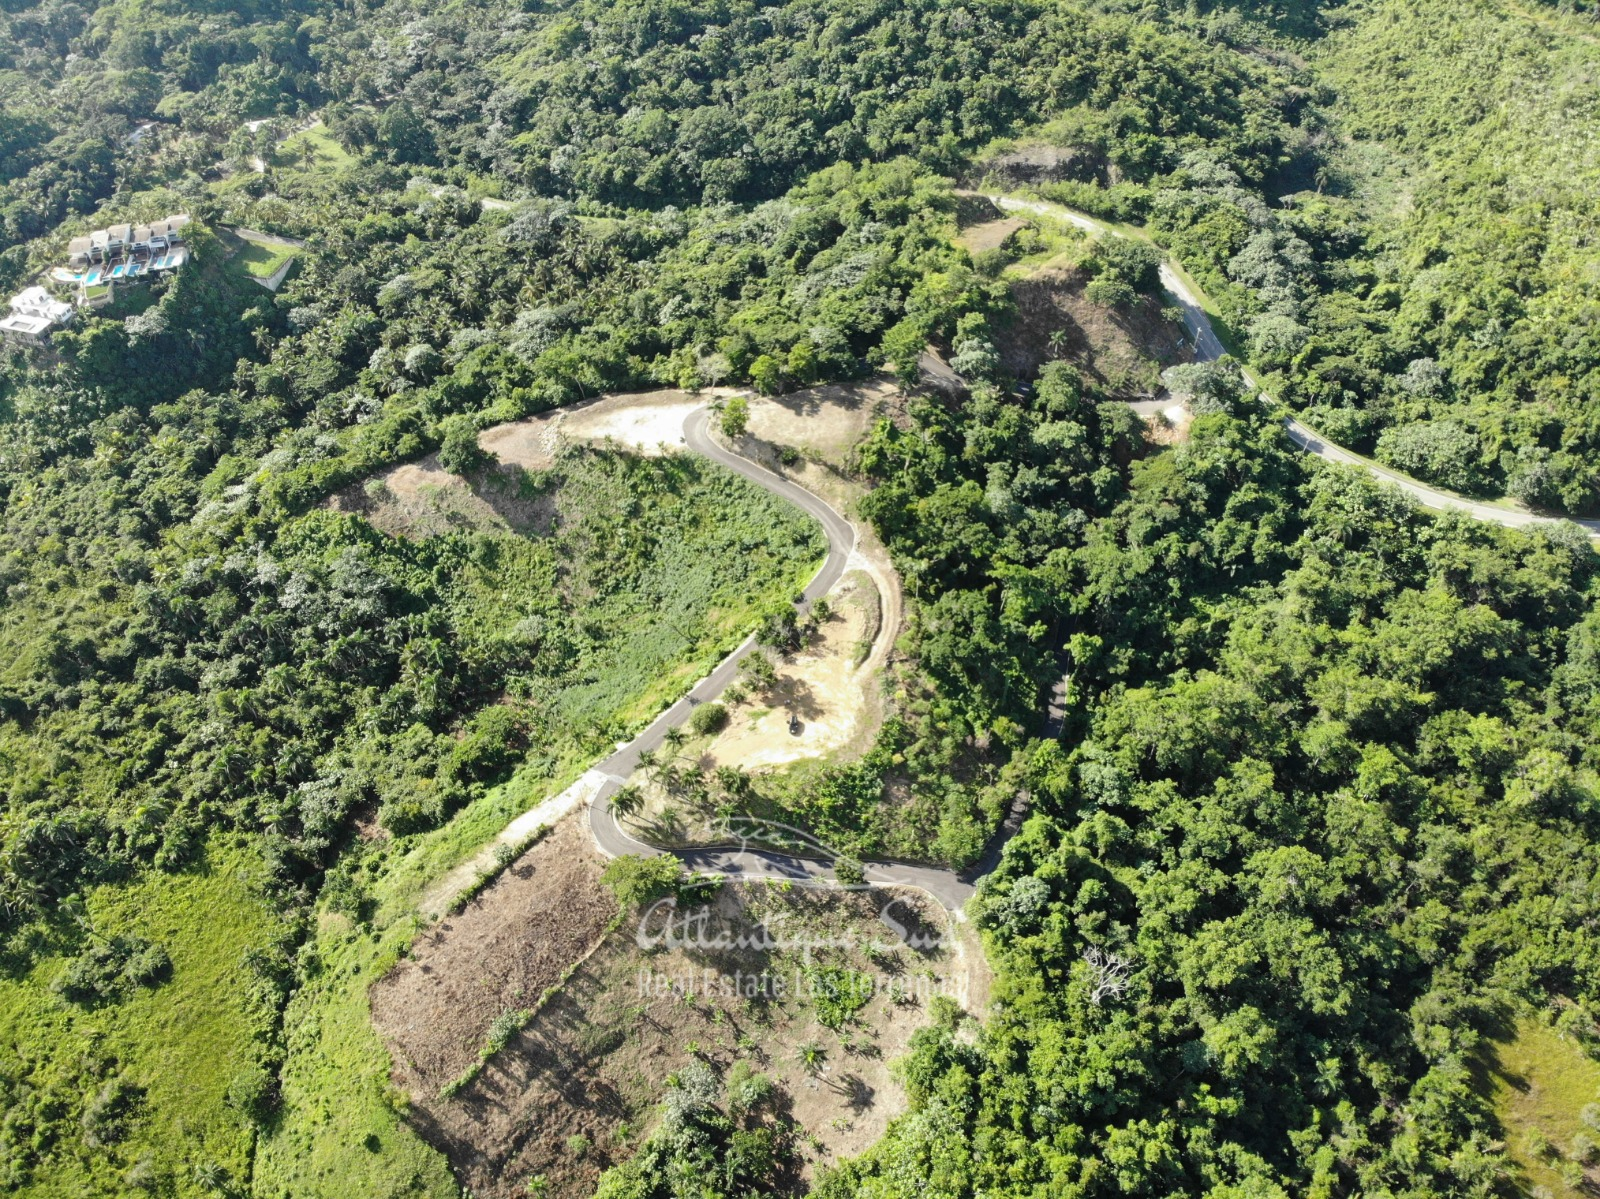 Land Lots for sale las terrenas samana11.jpeg